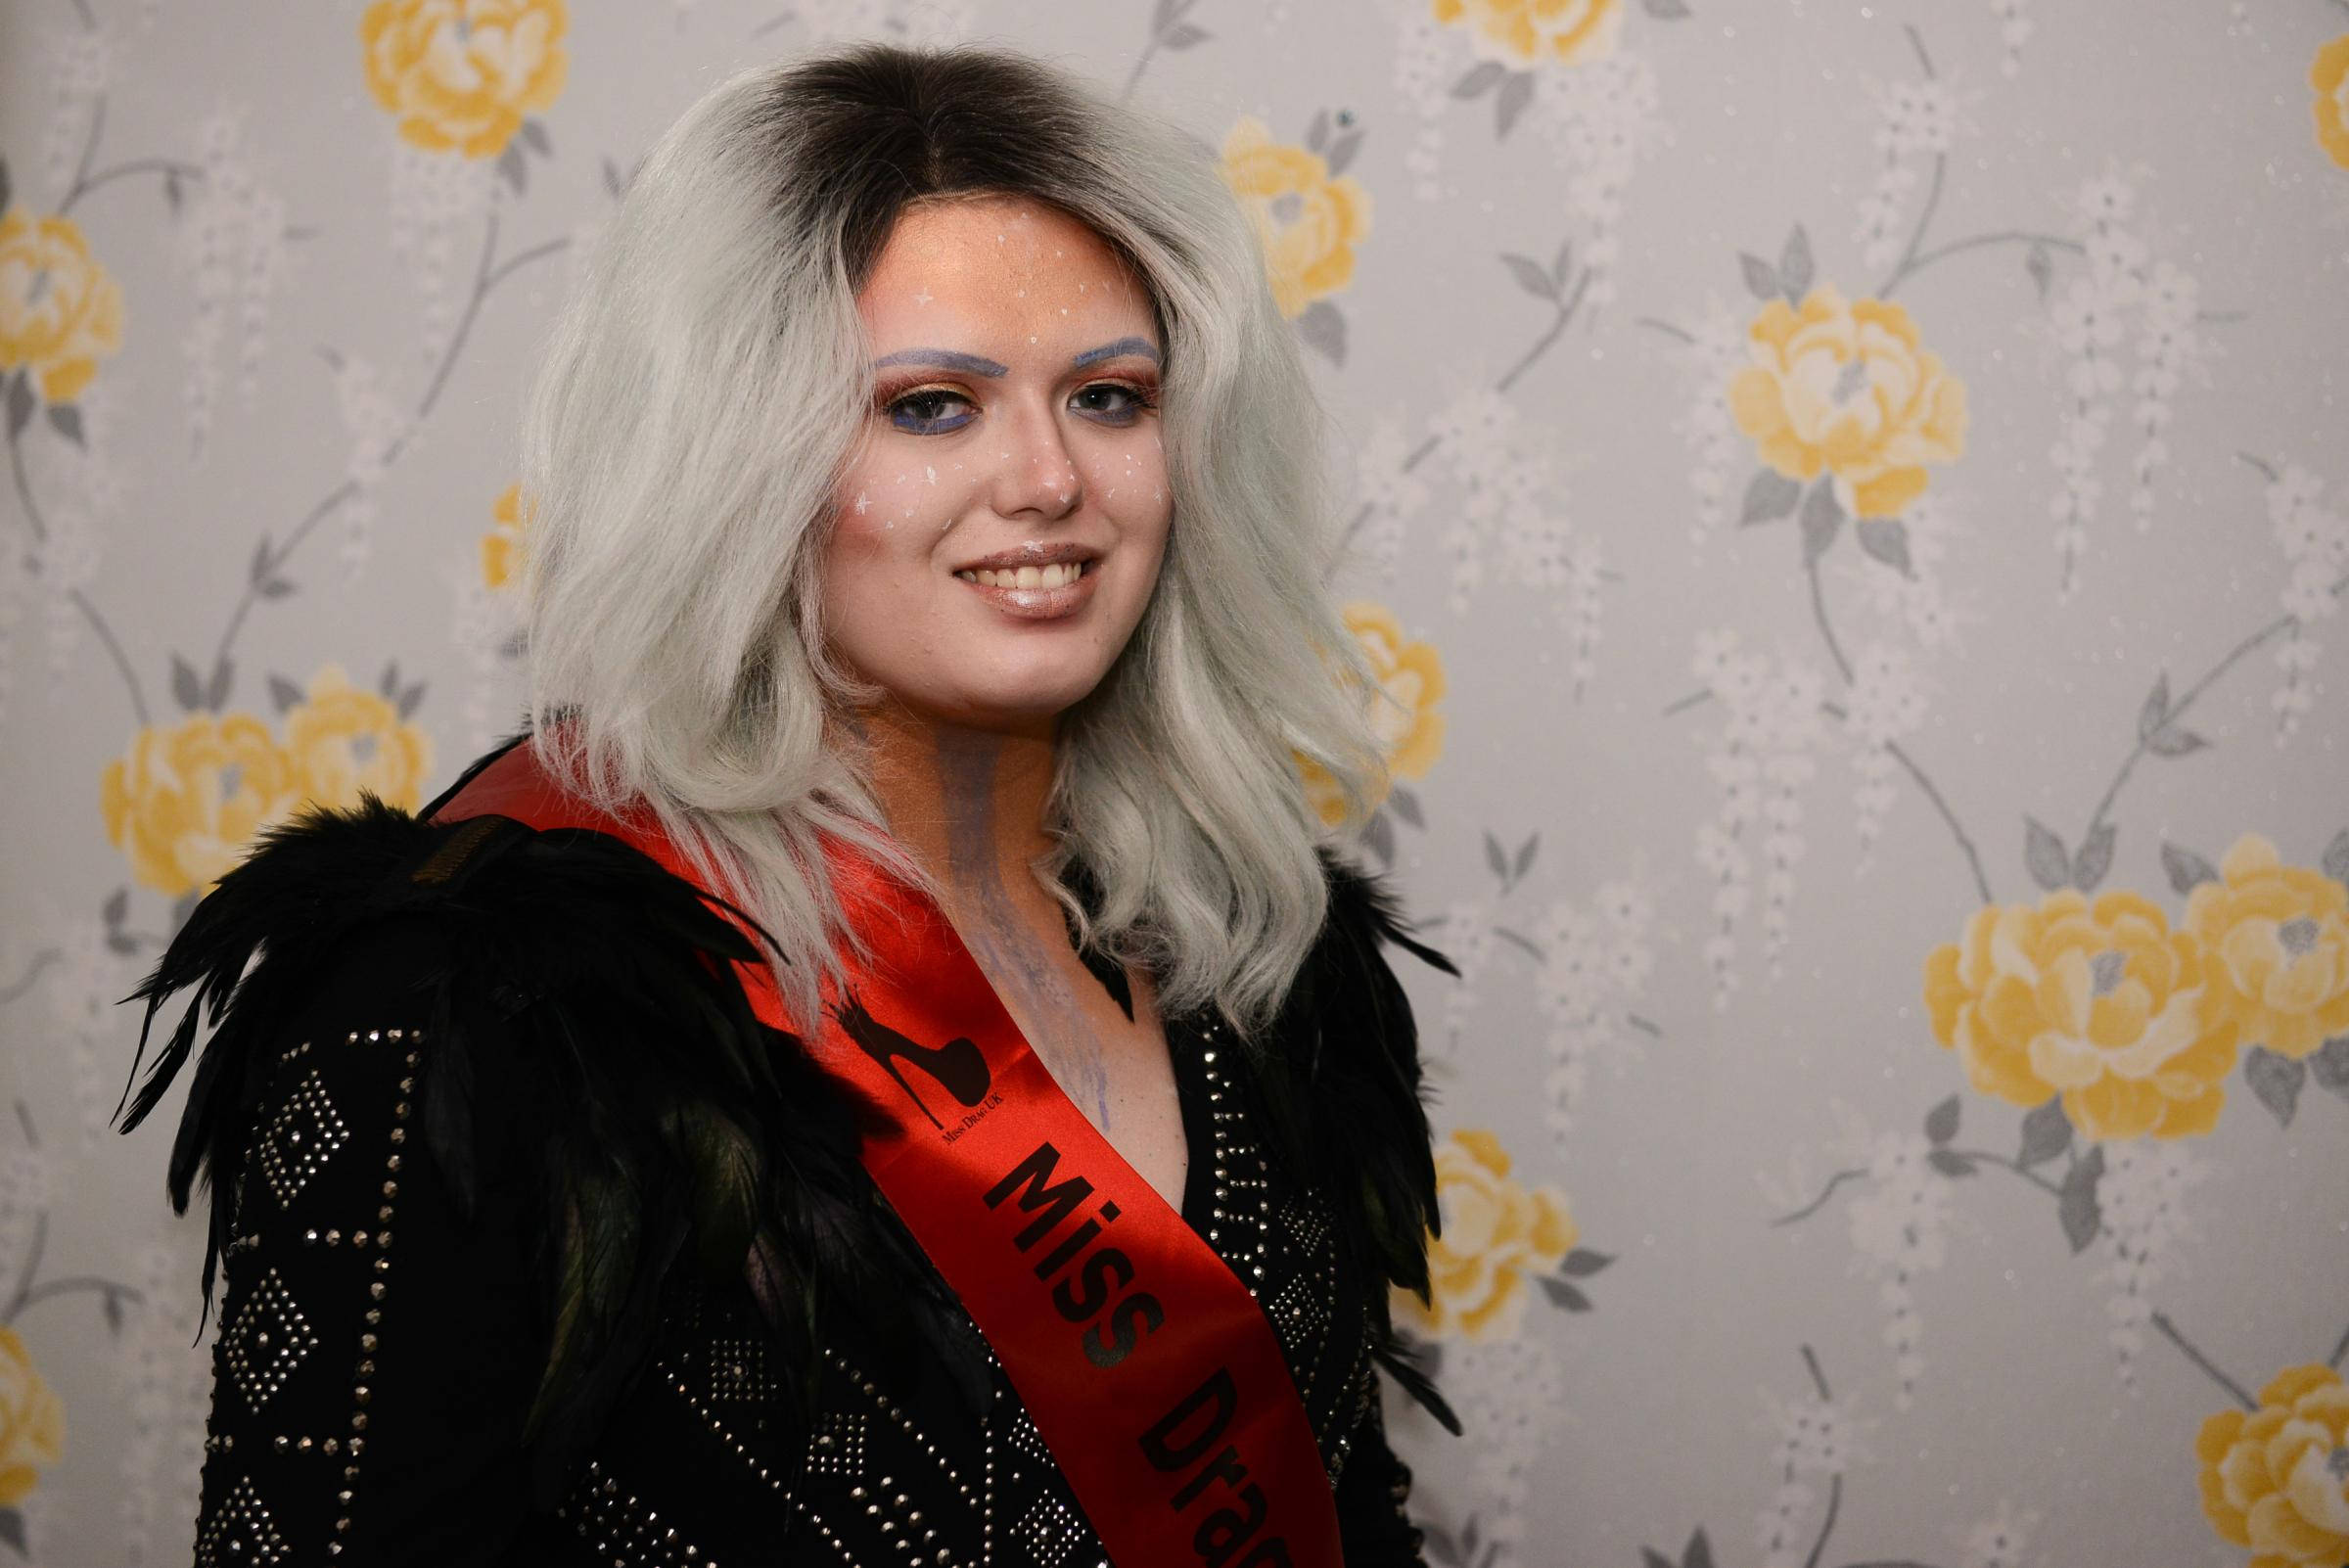 Charlie Barton from Ross-on-Wye is a finalist in the Miss Drag UK pageant.